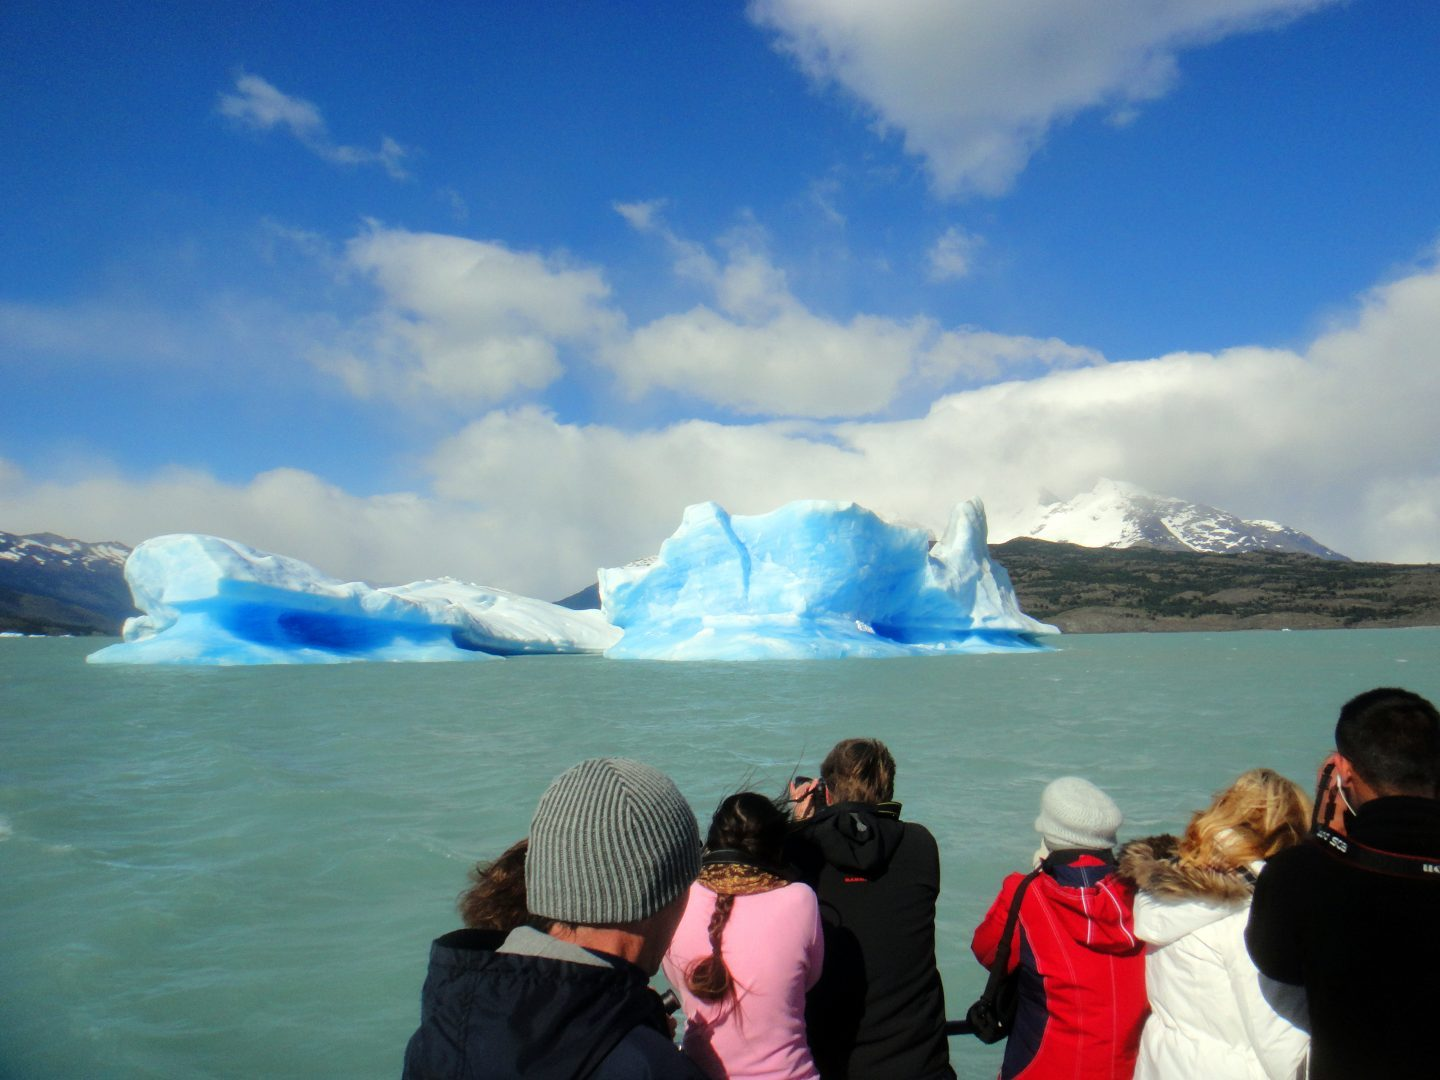 Glacier-gazing from the boat